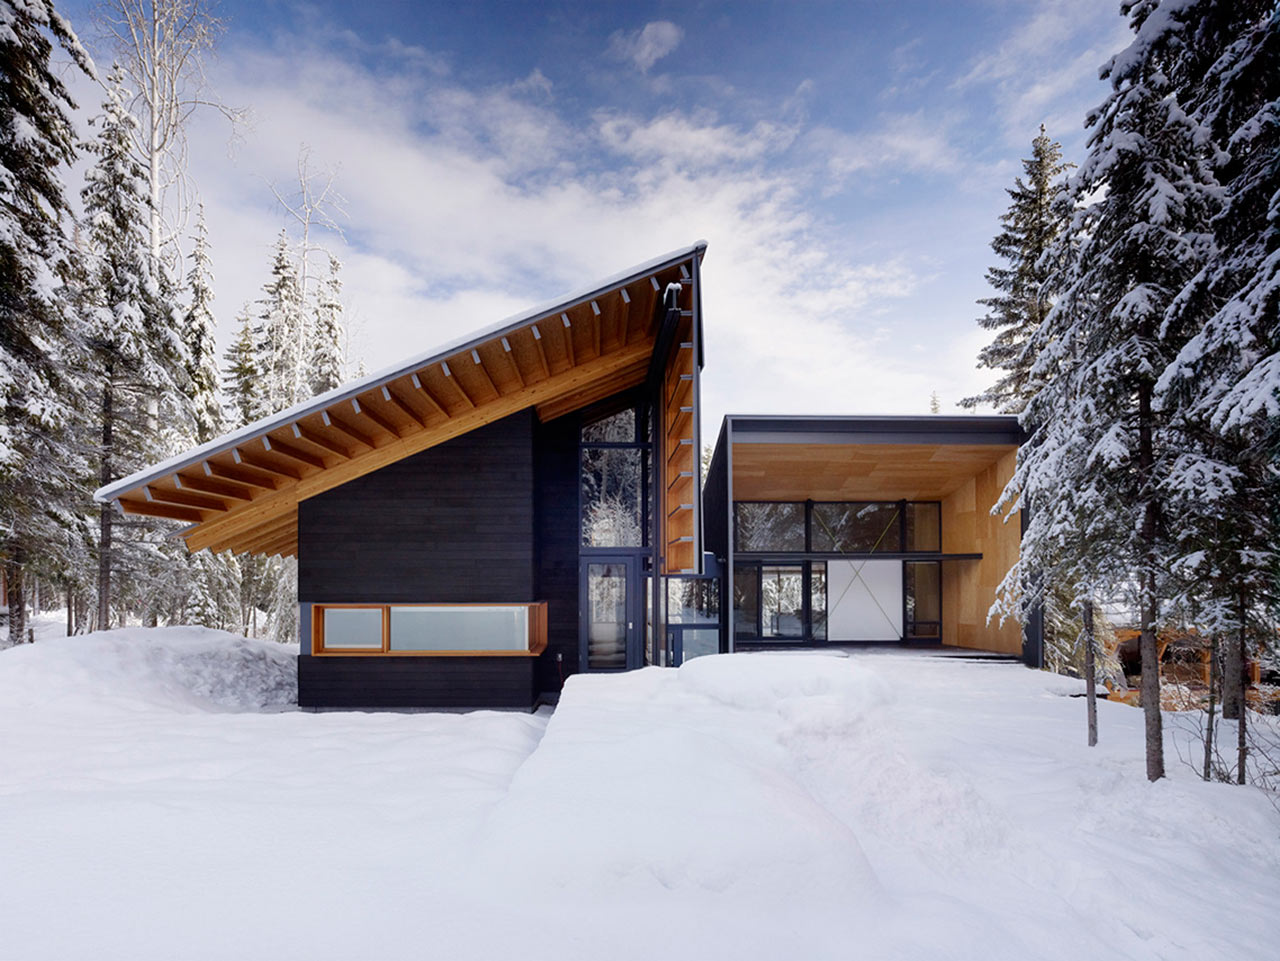 10 Modern Wintry Cabins Wed Be Happy To Hole Up